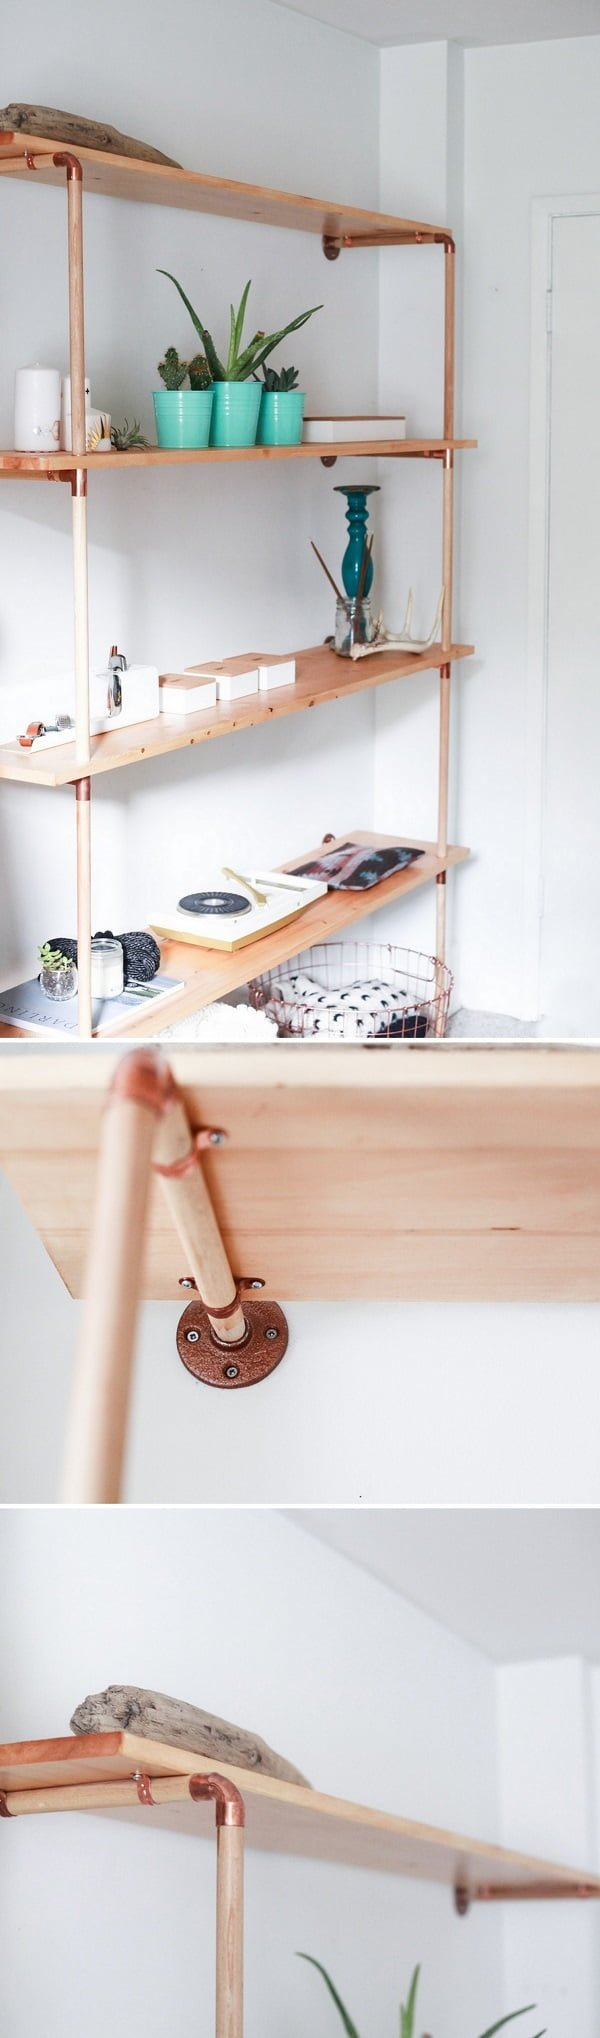 16 Trendy DIY Ideas to Decorate with Copper - Love the idea for   copper and wood shelves